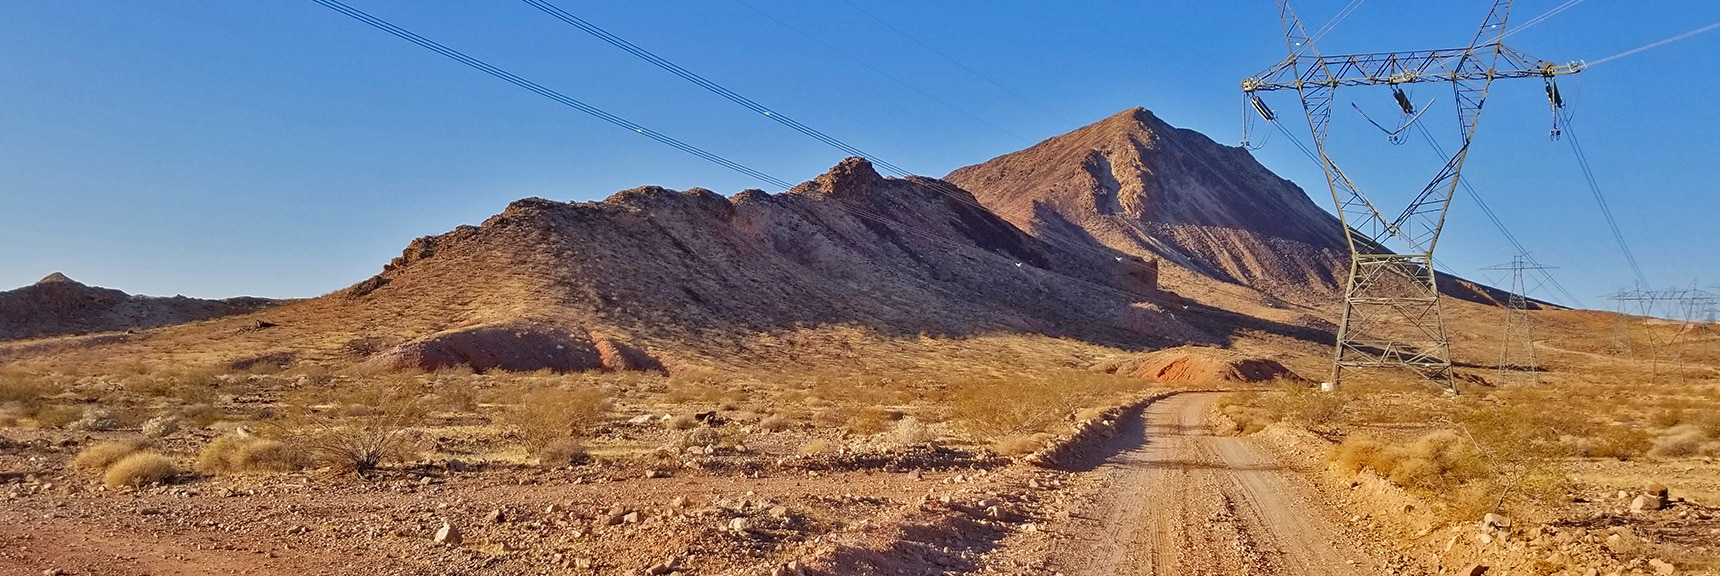 Heading Off Road Here to Skirt the Left Side of This Approach Ridge, Leaving the Power Lines Behind! | Lava Butte | Lake Mead National Recreation Area, Nevada